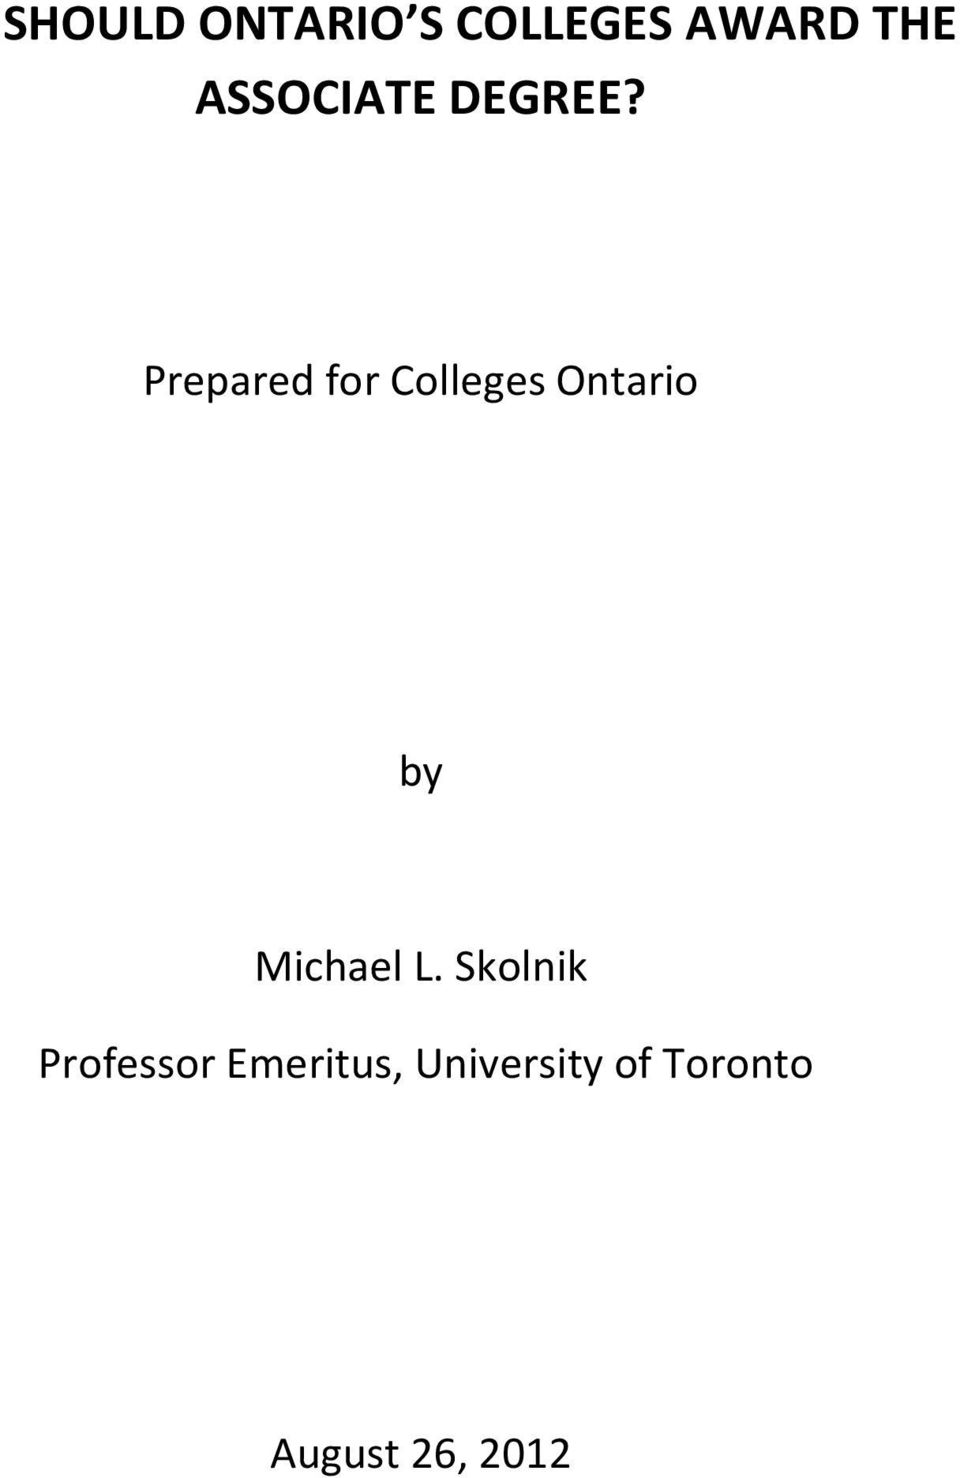 Prepared for Colleges Ontario by Michael